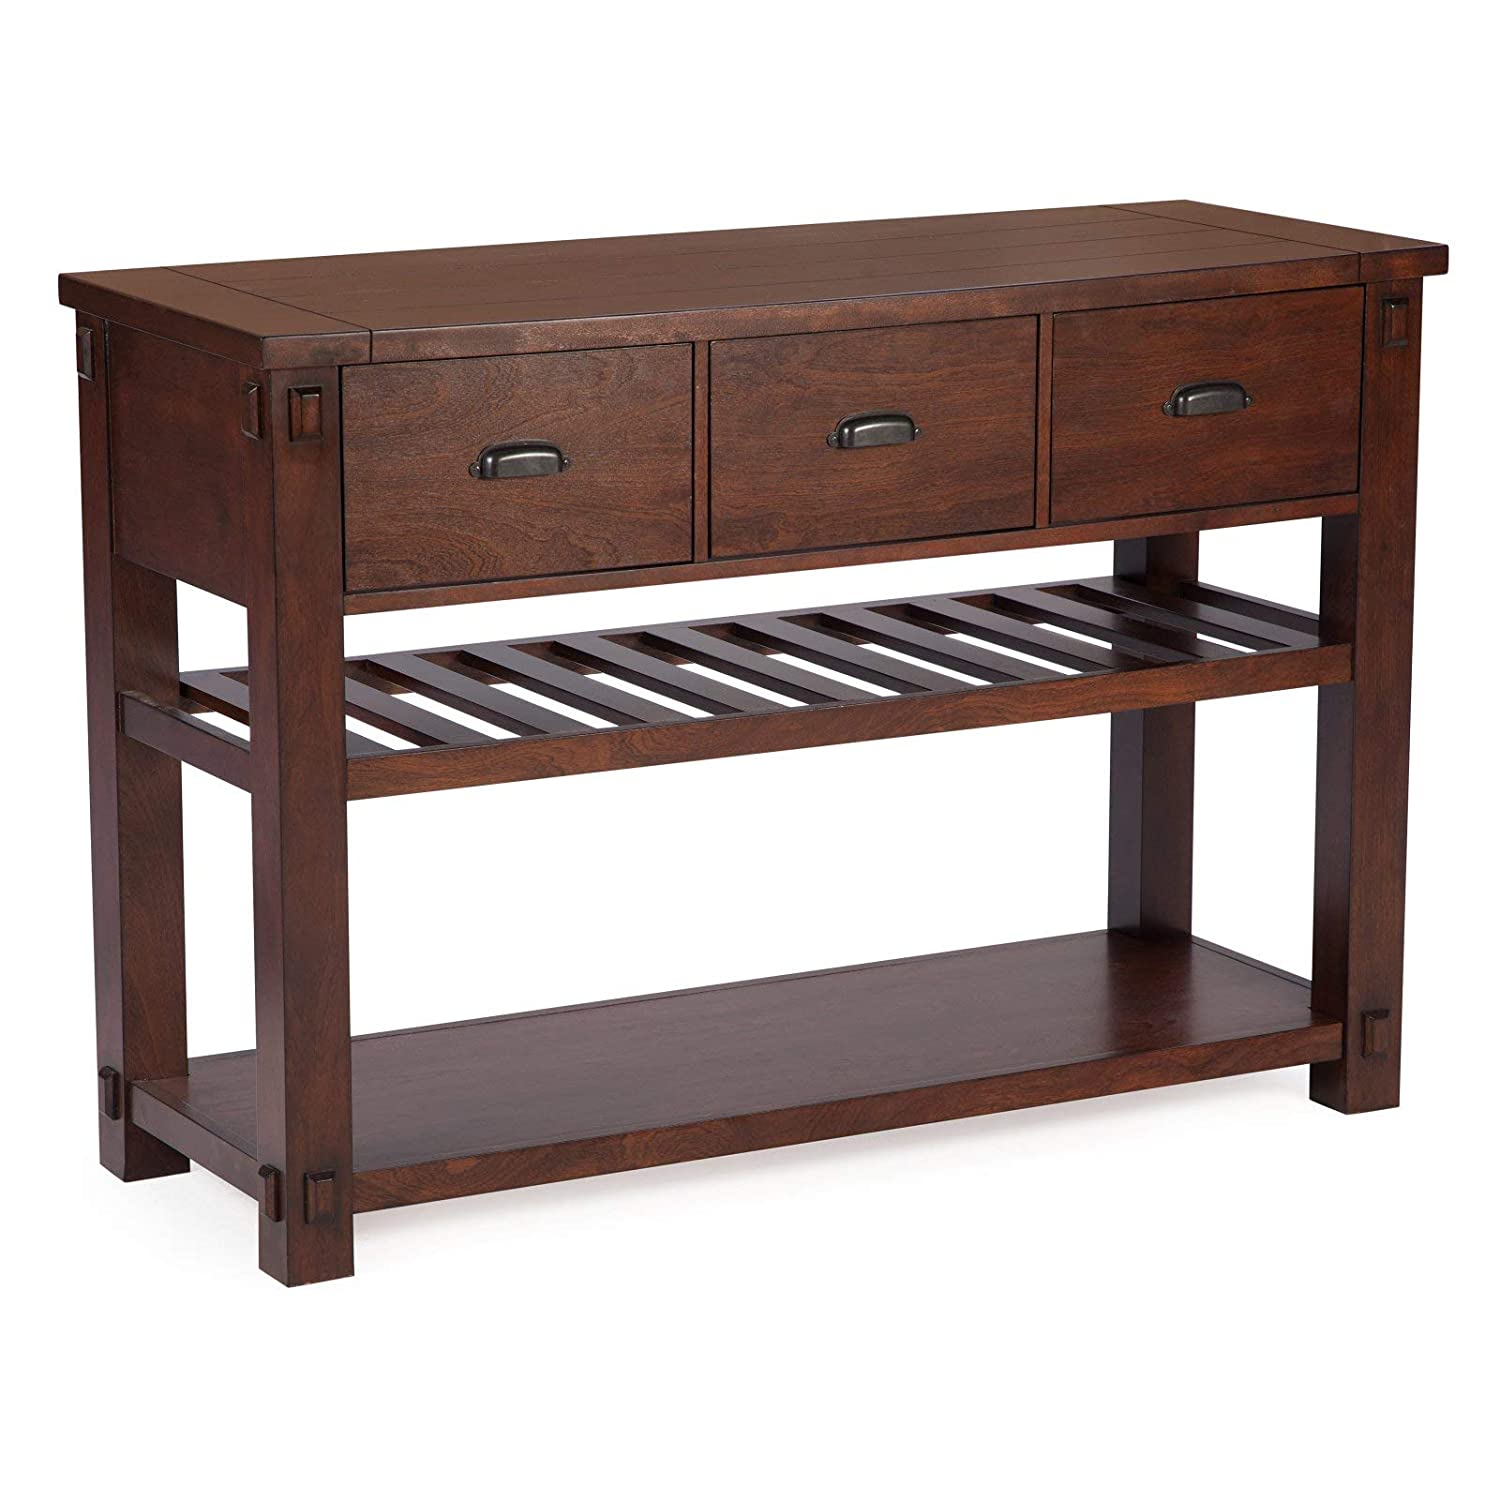 buy online 70cff dce87 Domestic Home Traditional Mission Shaker Style Dark Espresso Brown Finish  Wood Buffet Server Sideboard Console with Drawers & Wine Storage